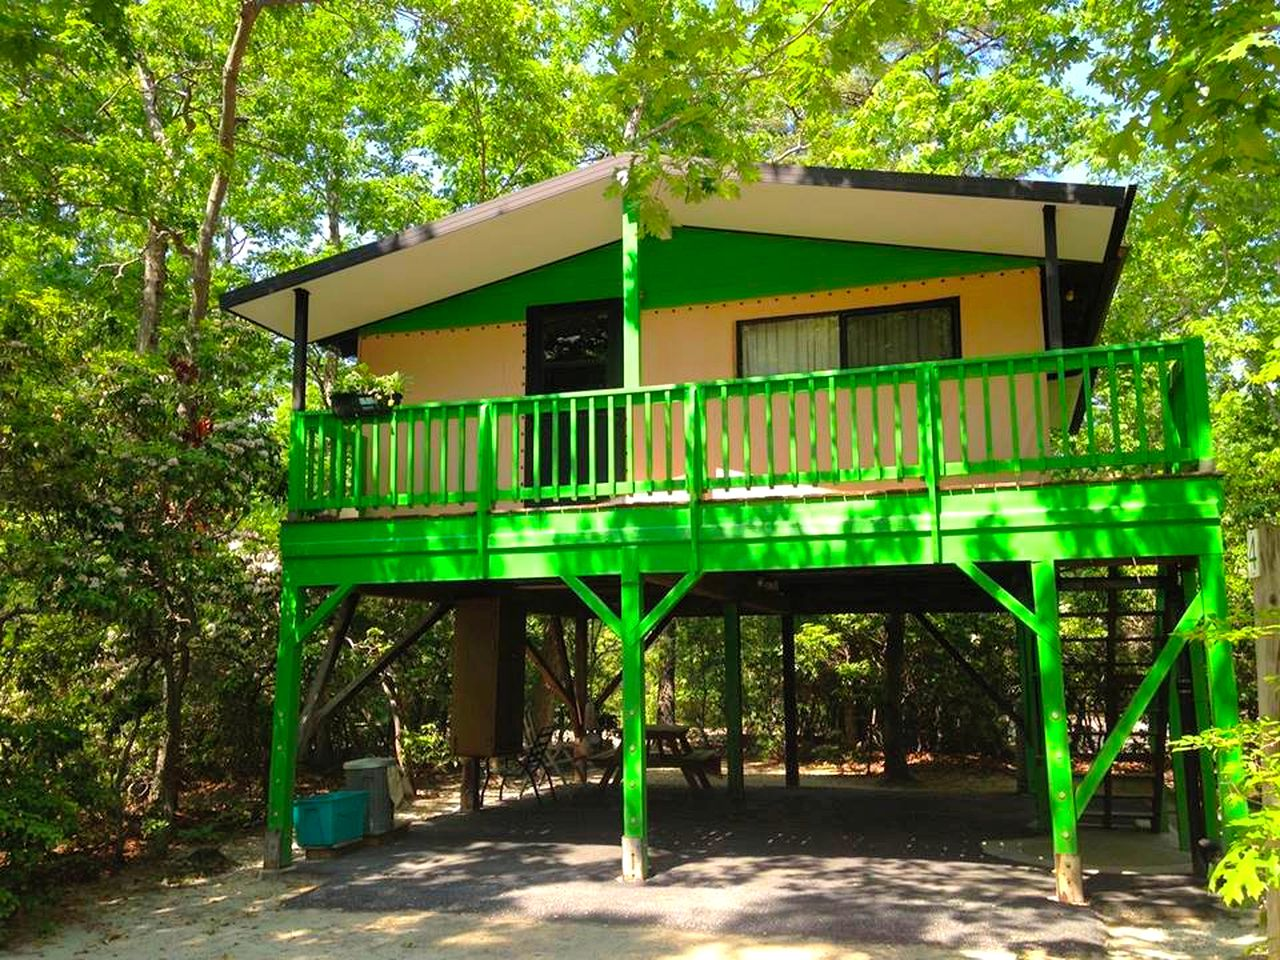 Tree house rental near Sea Isle City, New Jersey